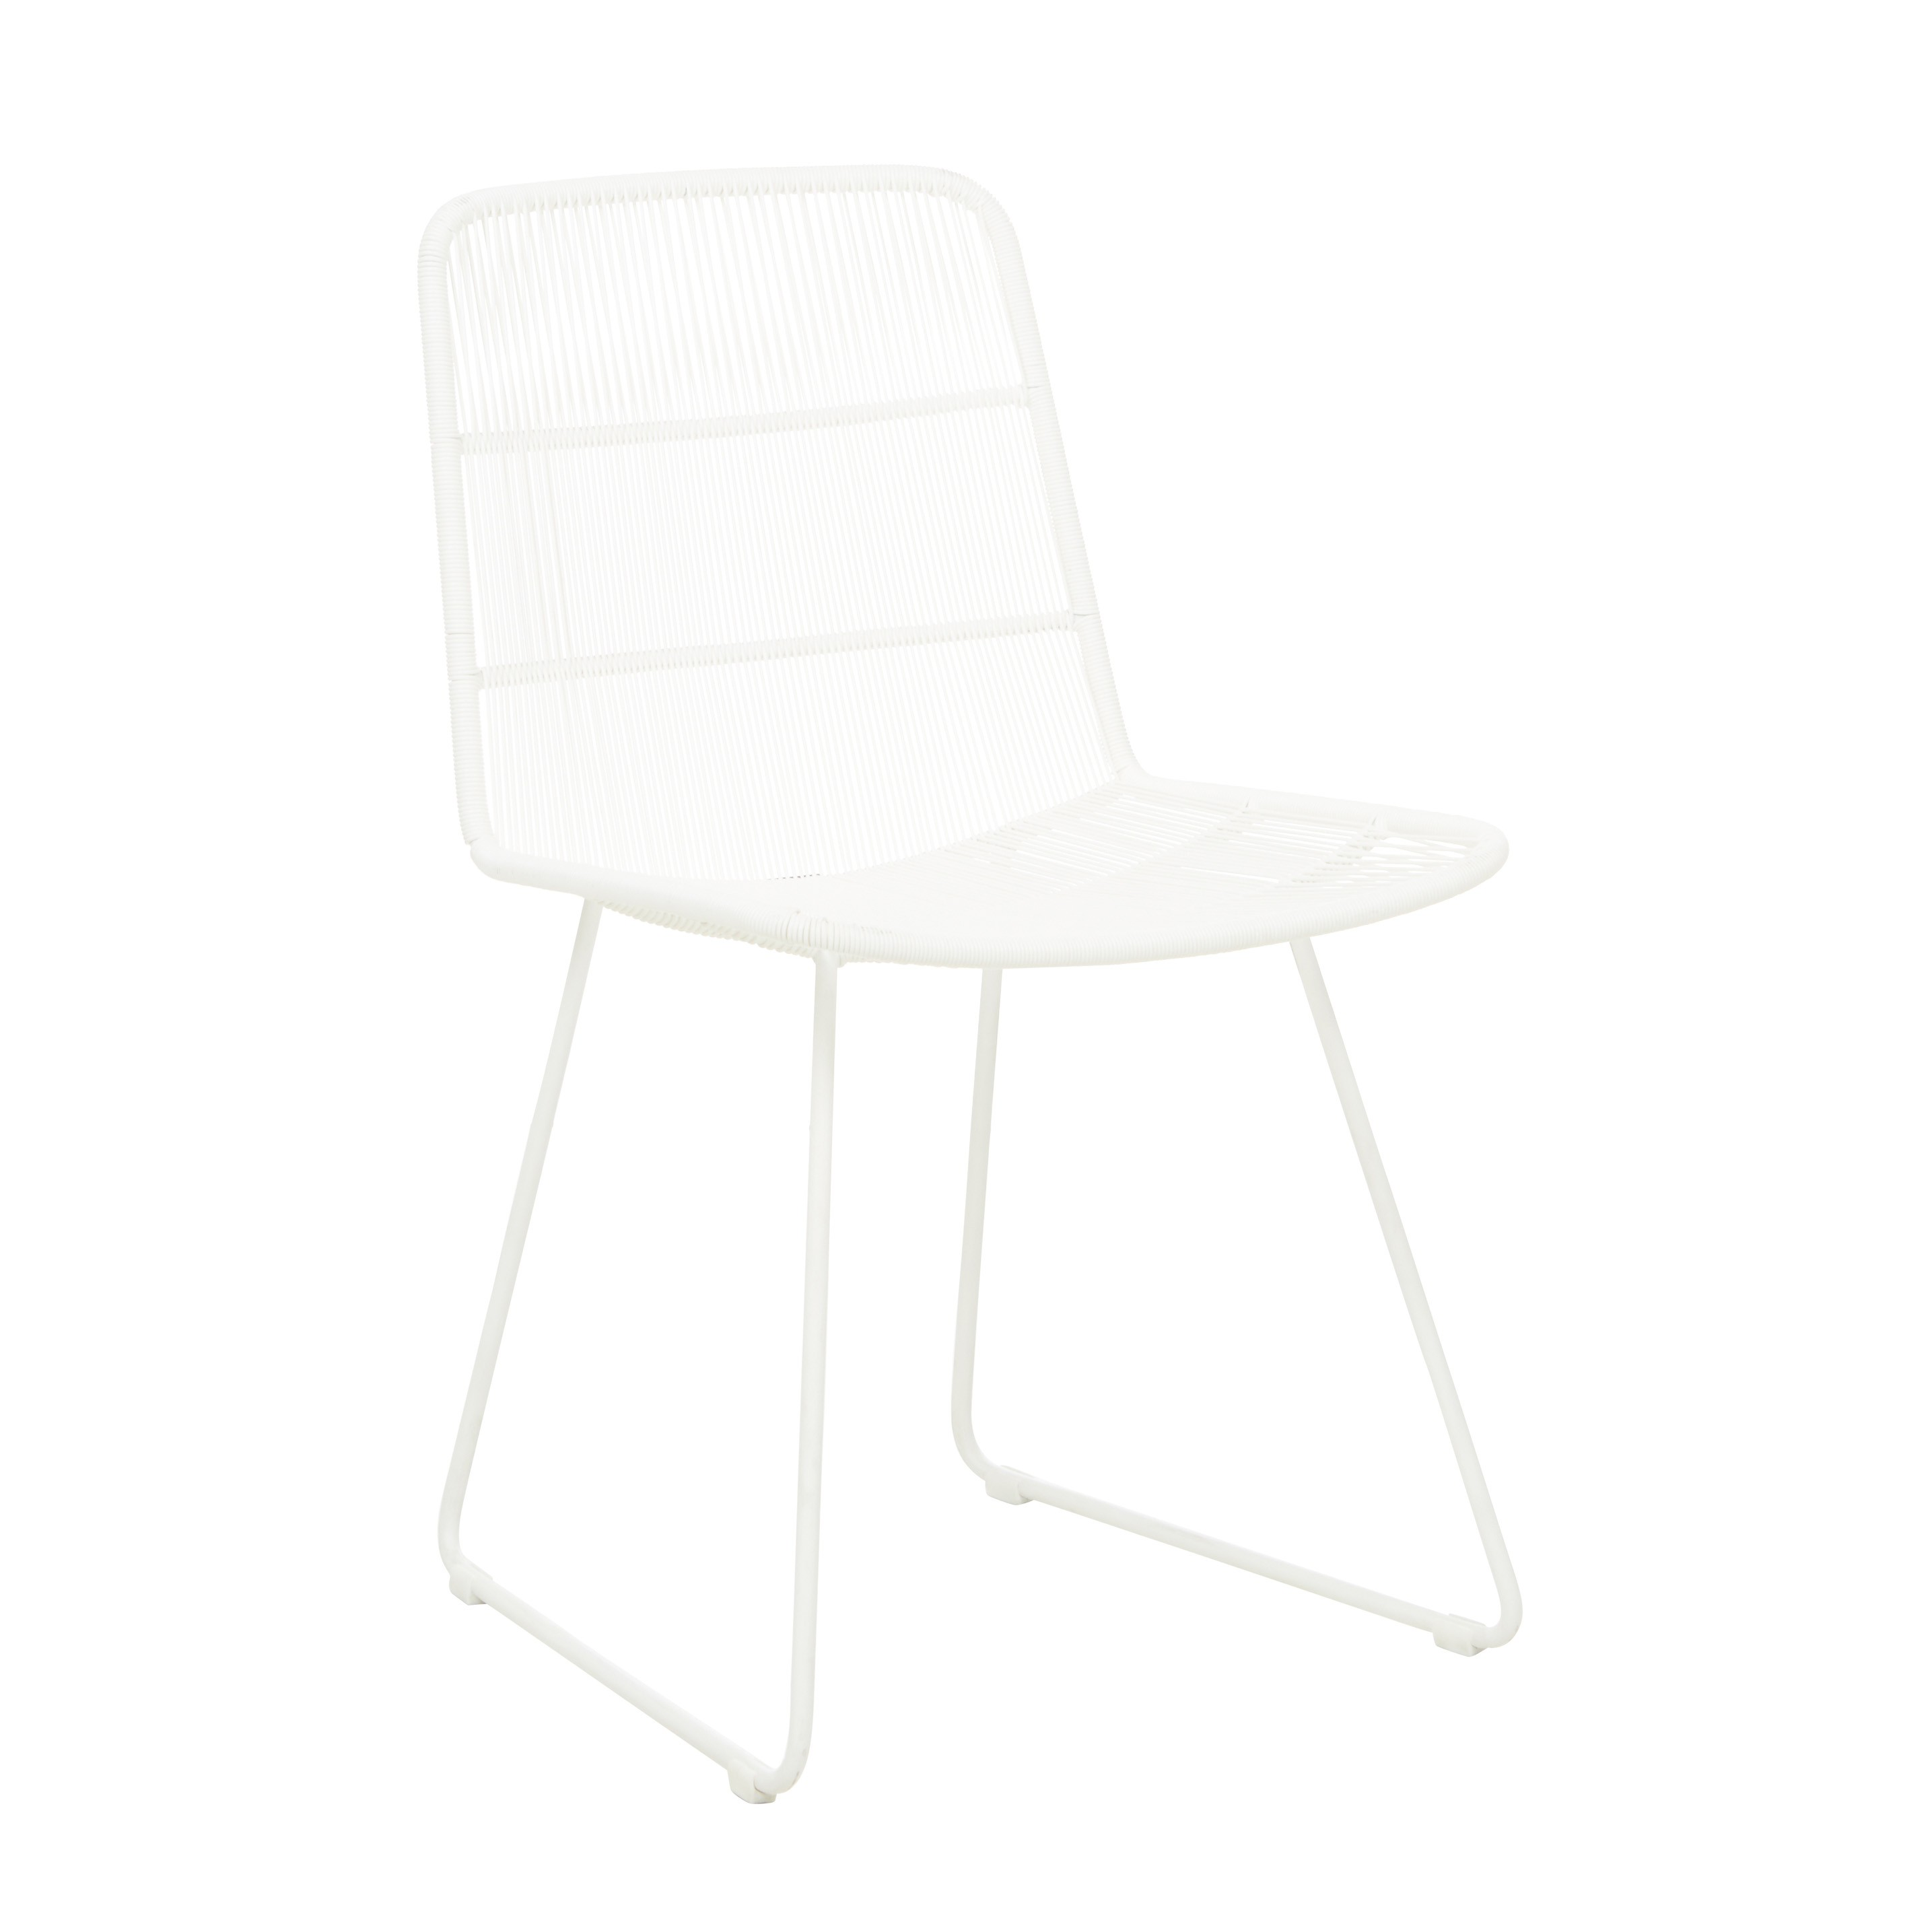 Furniture Hero-Images Dining-Chairs-Benches-and-Stools granada-sleigh-dining-chair-02